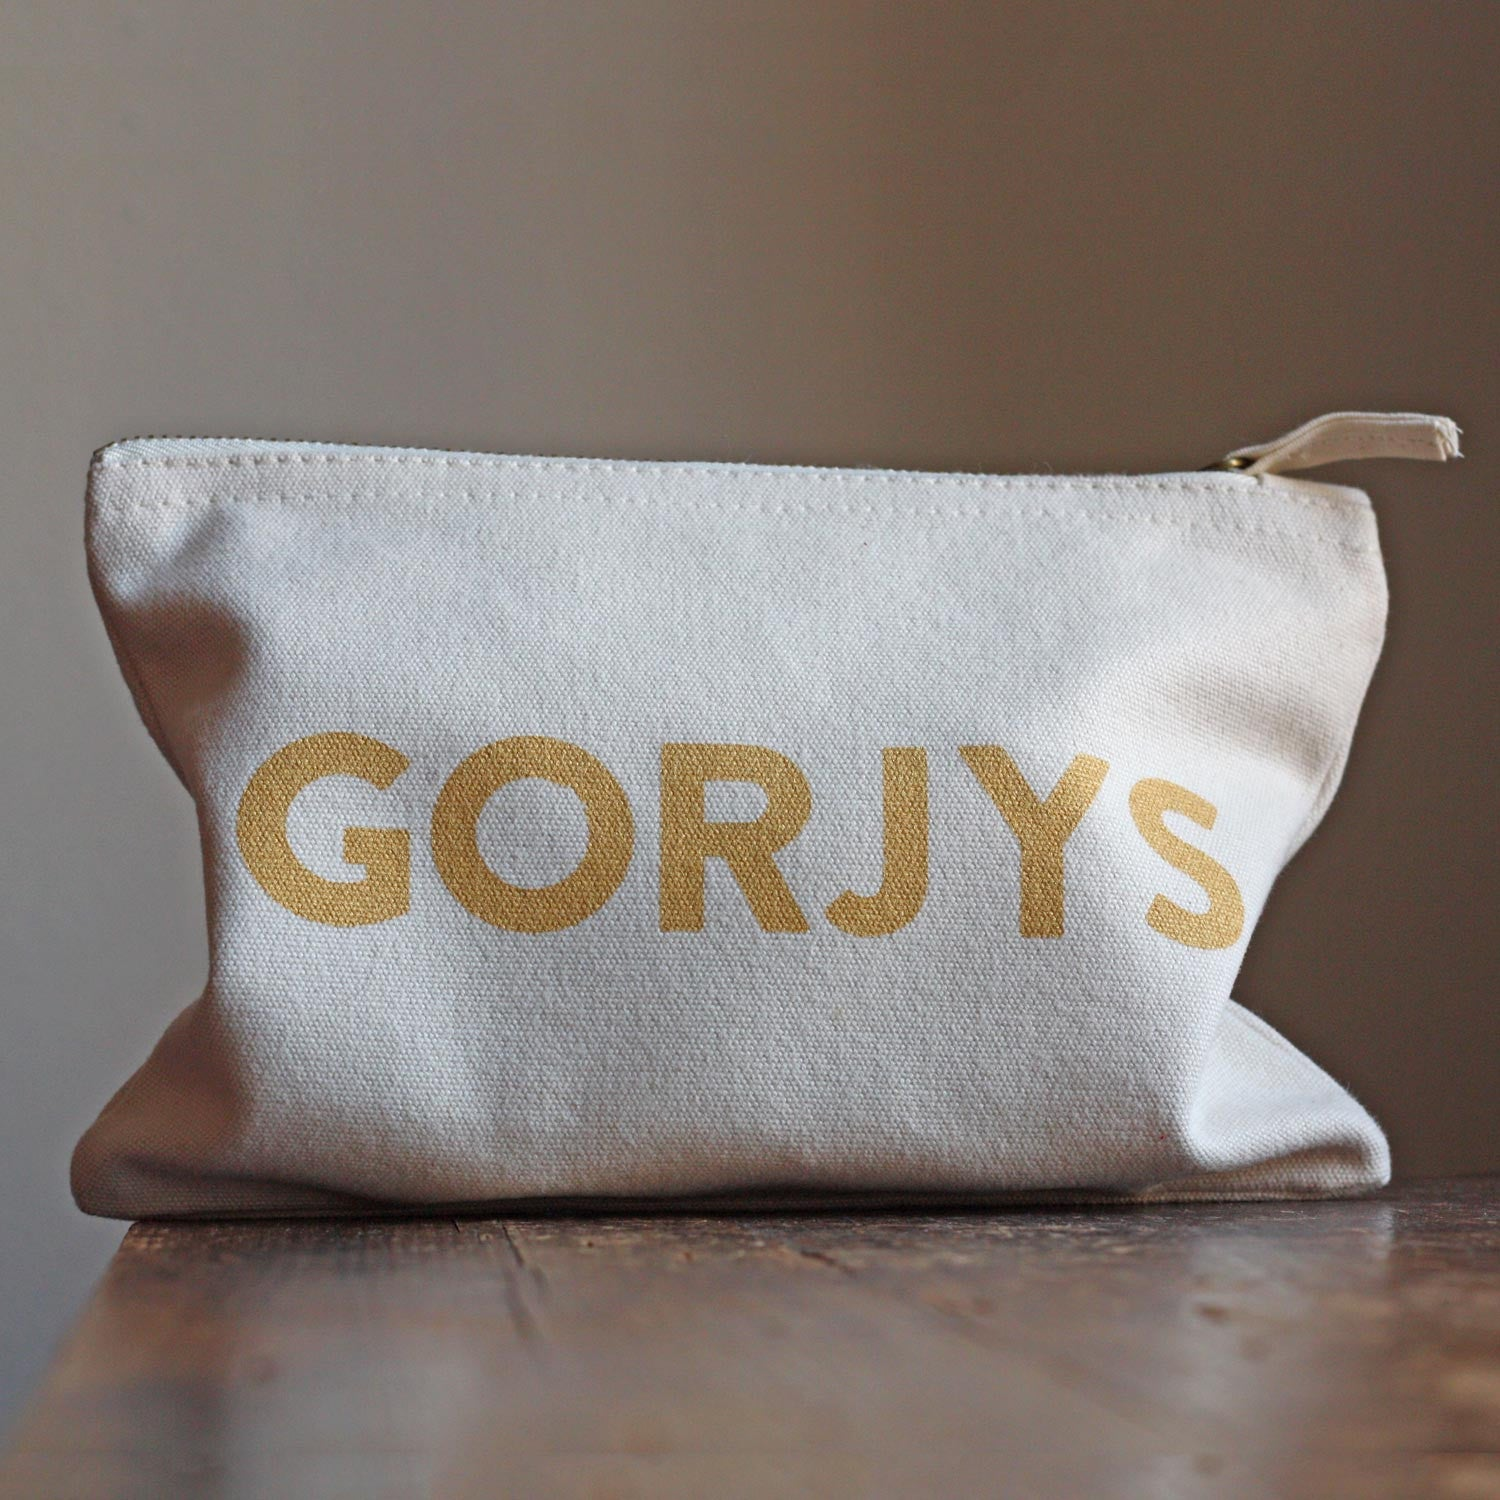 Make up Bag / Zipped Purse - Gorjys - Gorgeous